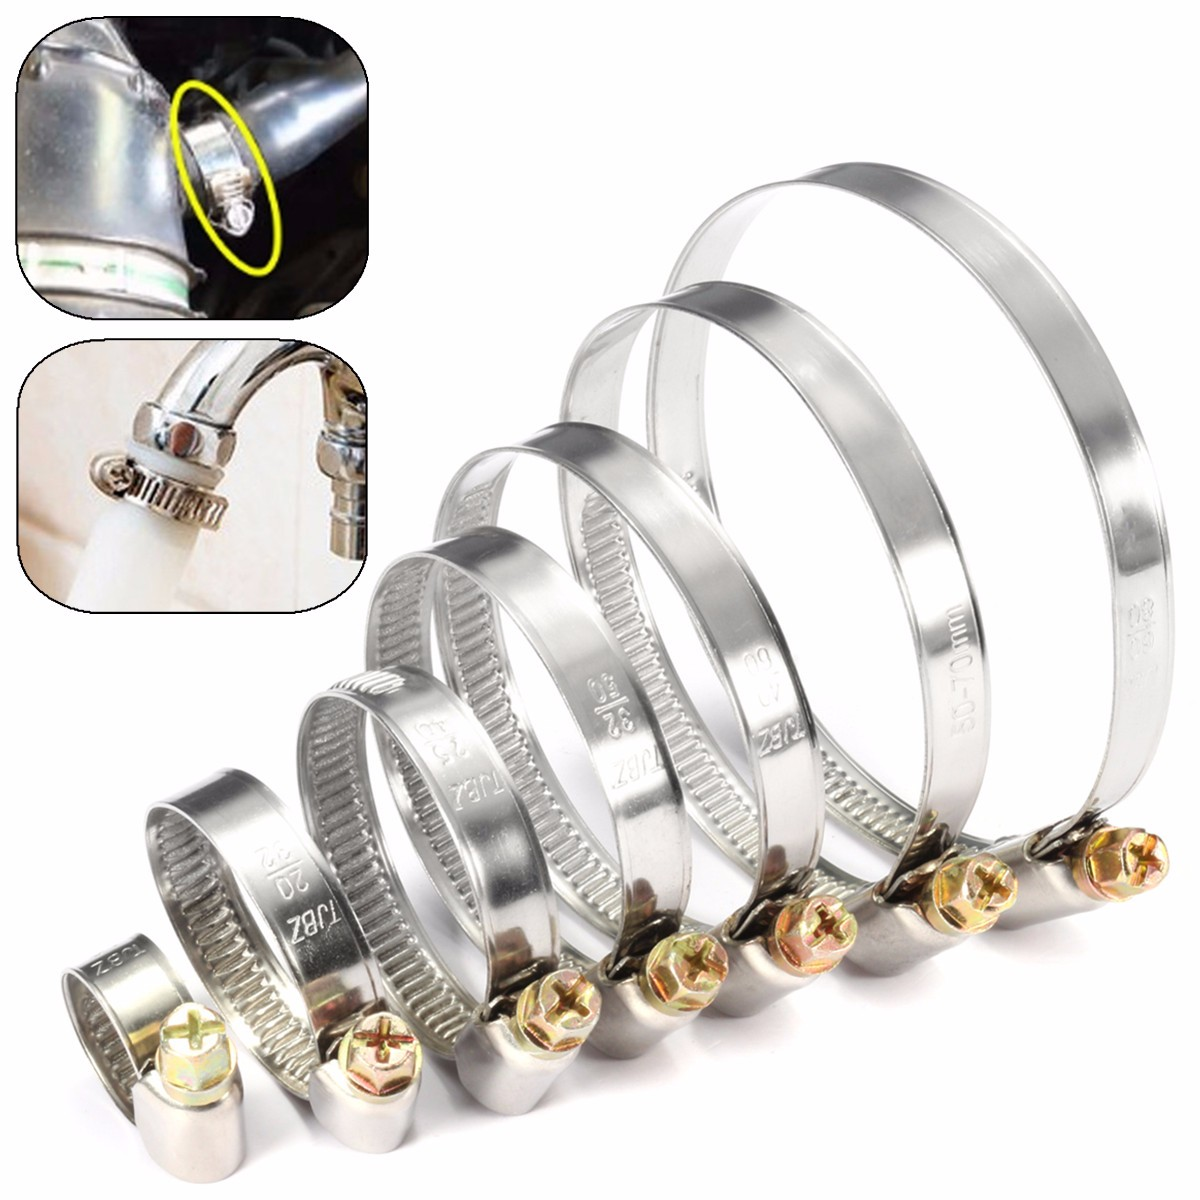 Genuine Jubilee Hose Clips Clamps Worm Drive Stainless Steel Mild Steel